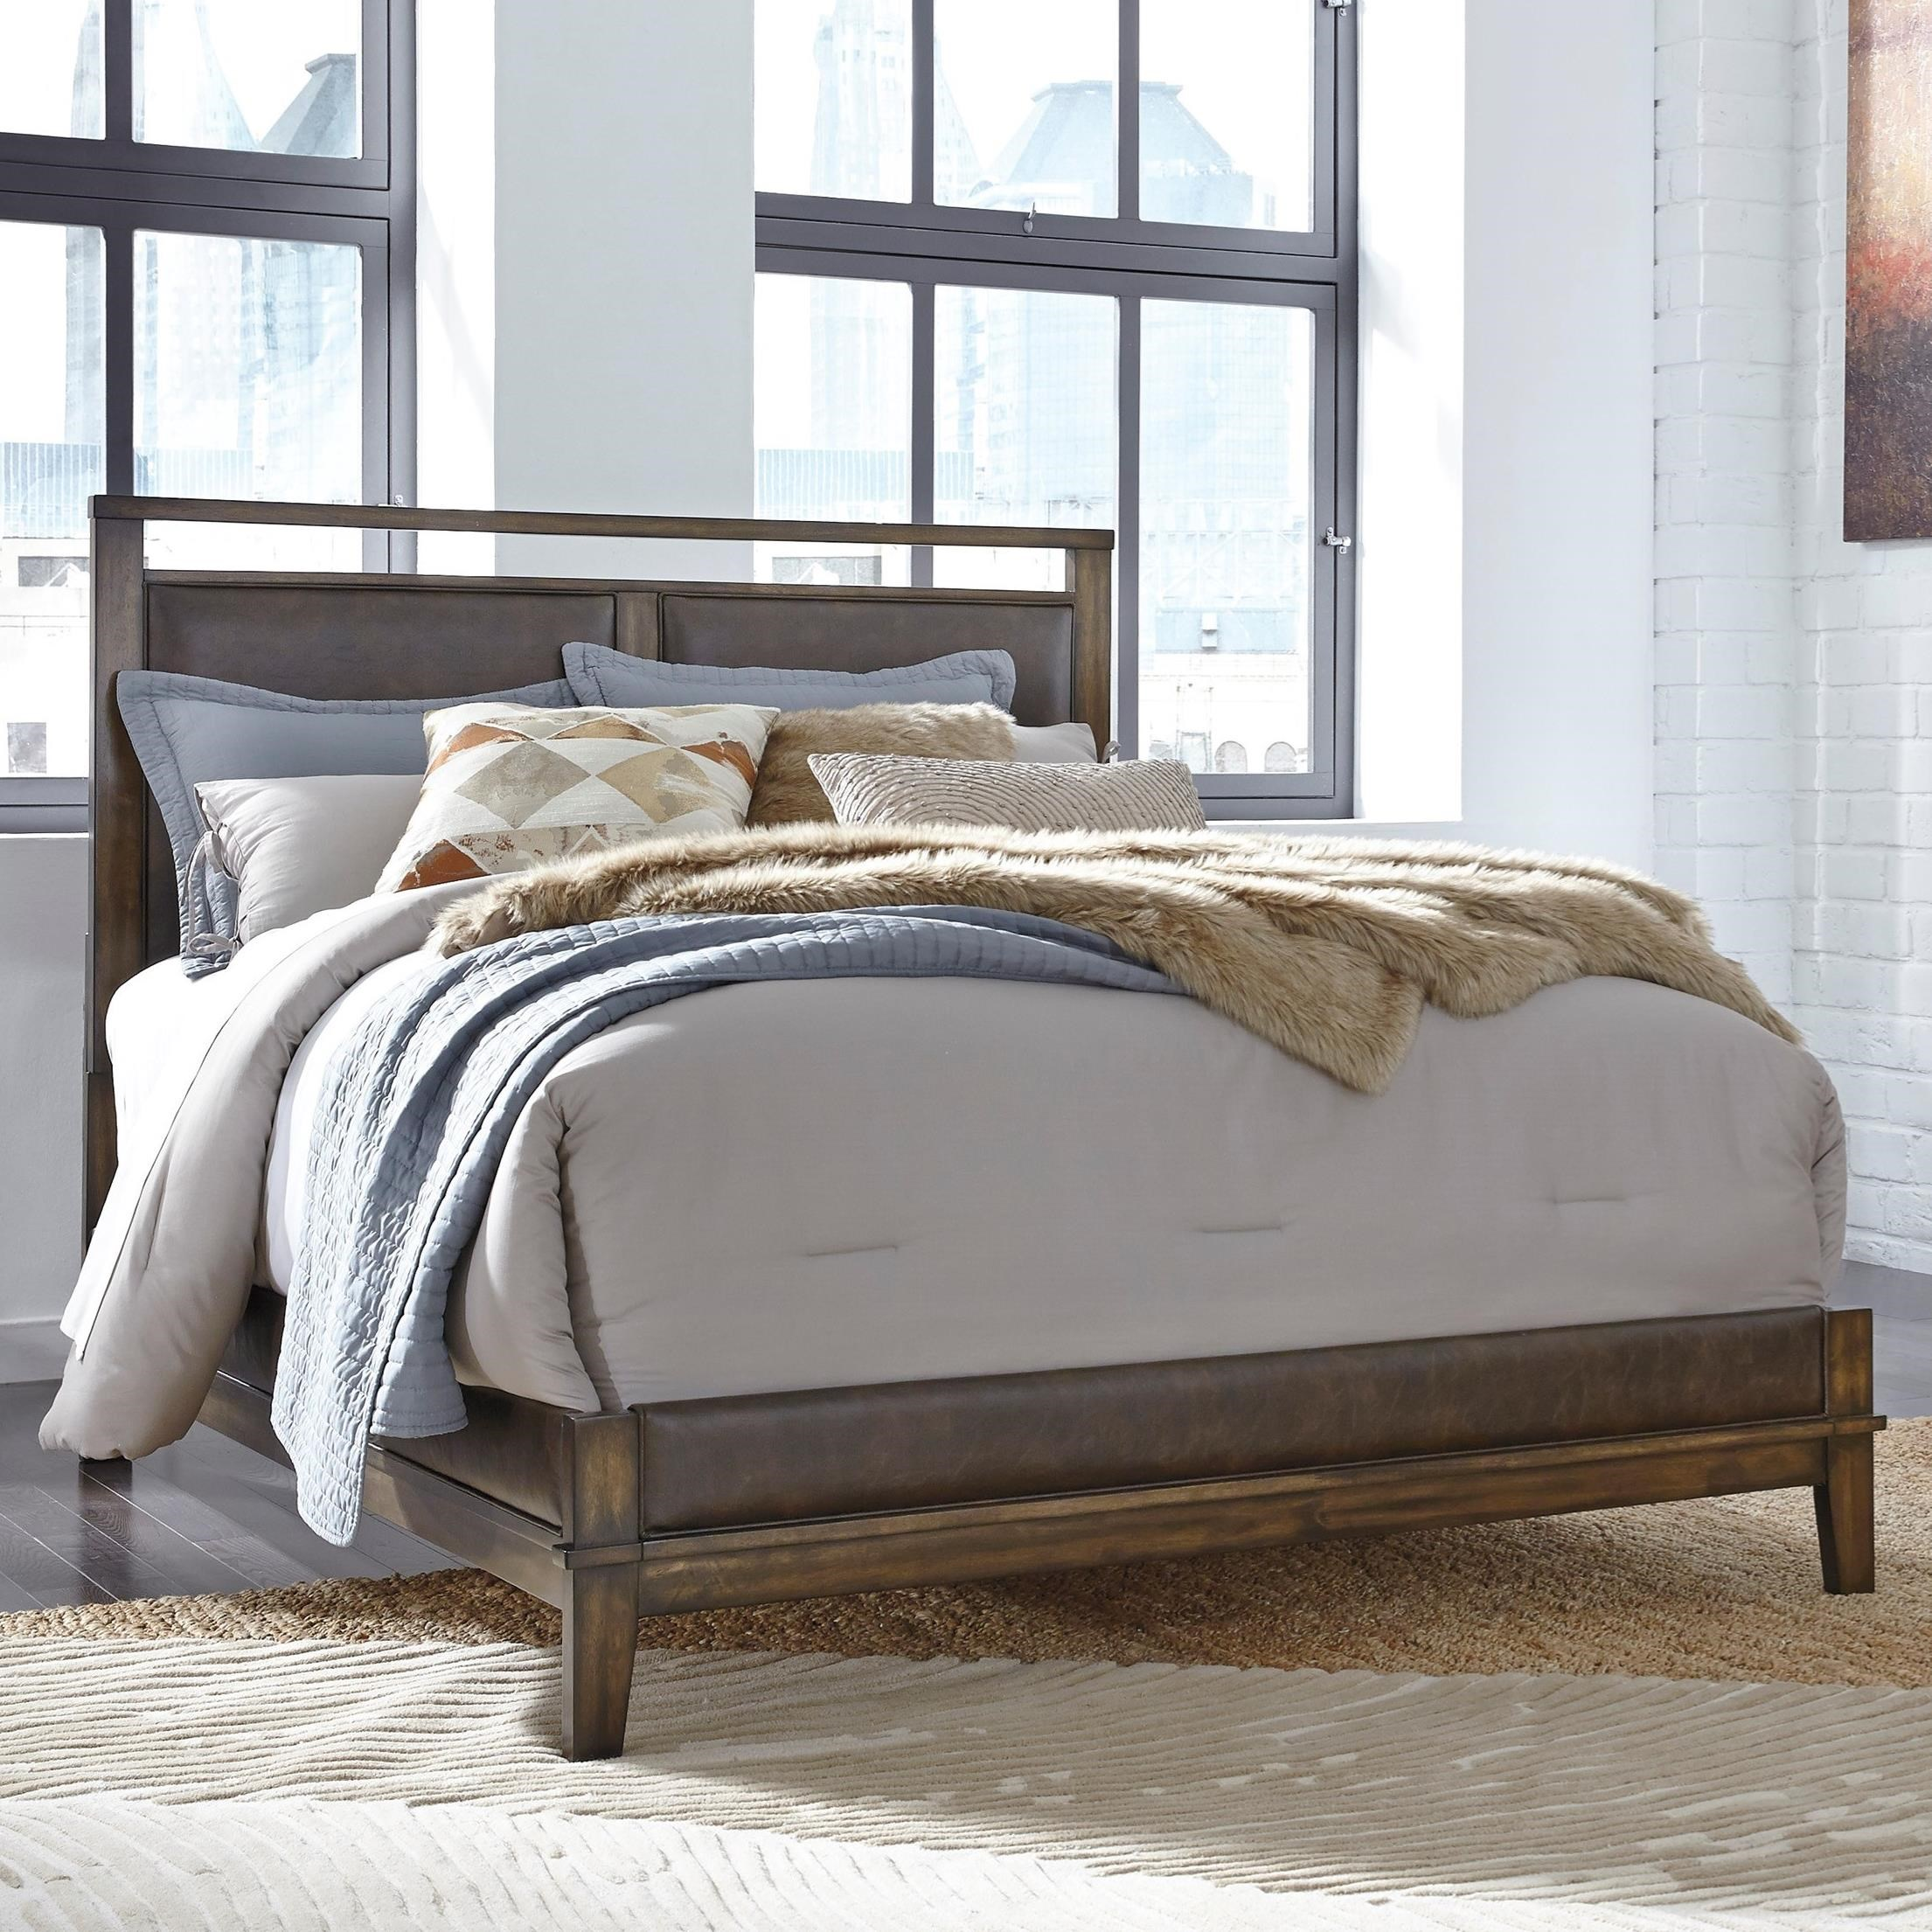 Signature Design by Ashley Zilmar California King Upholstered Panel Bed - Item Number: B548-82+94